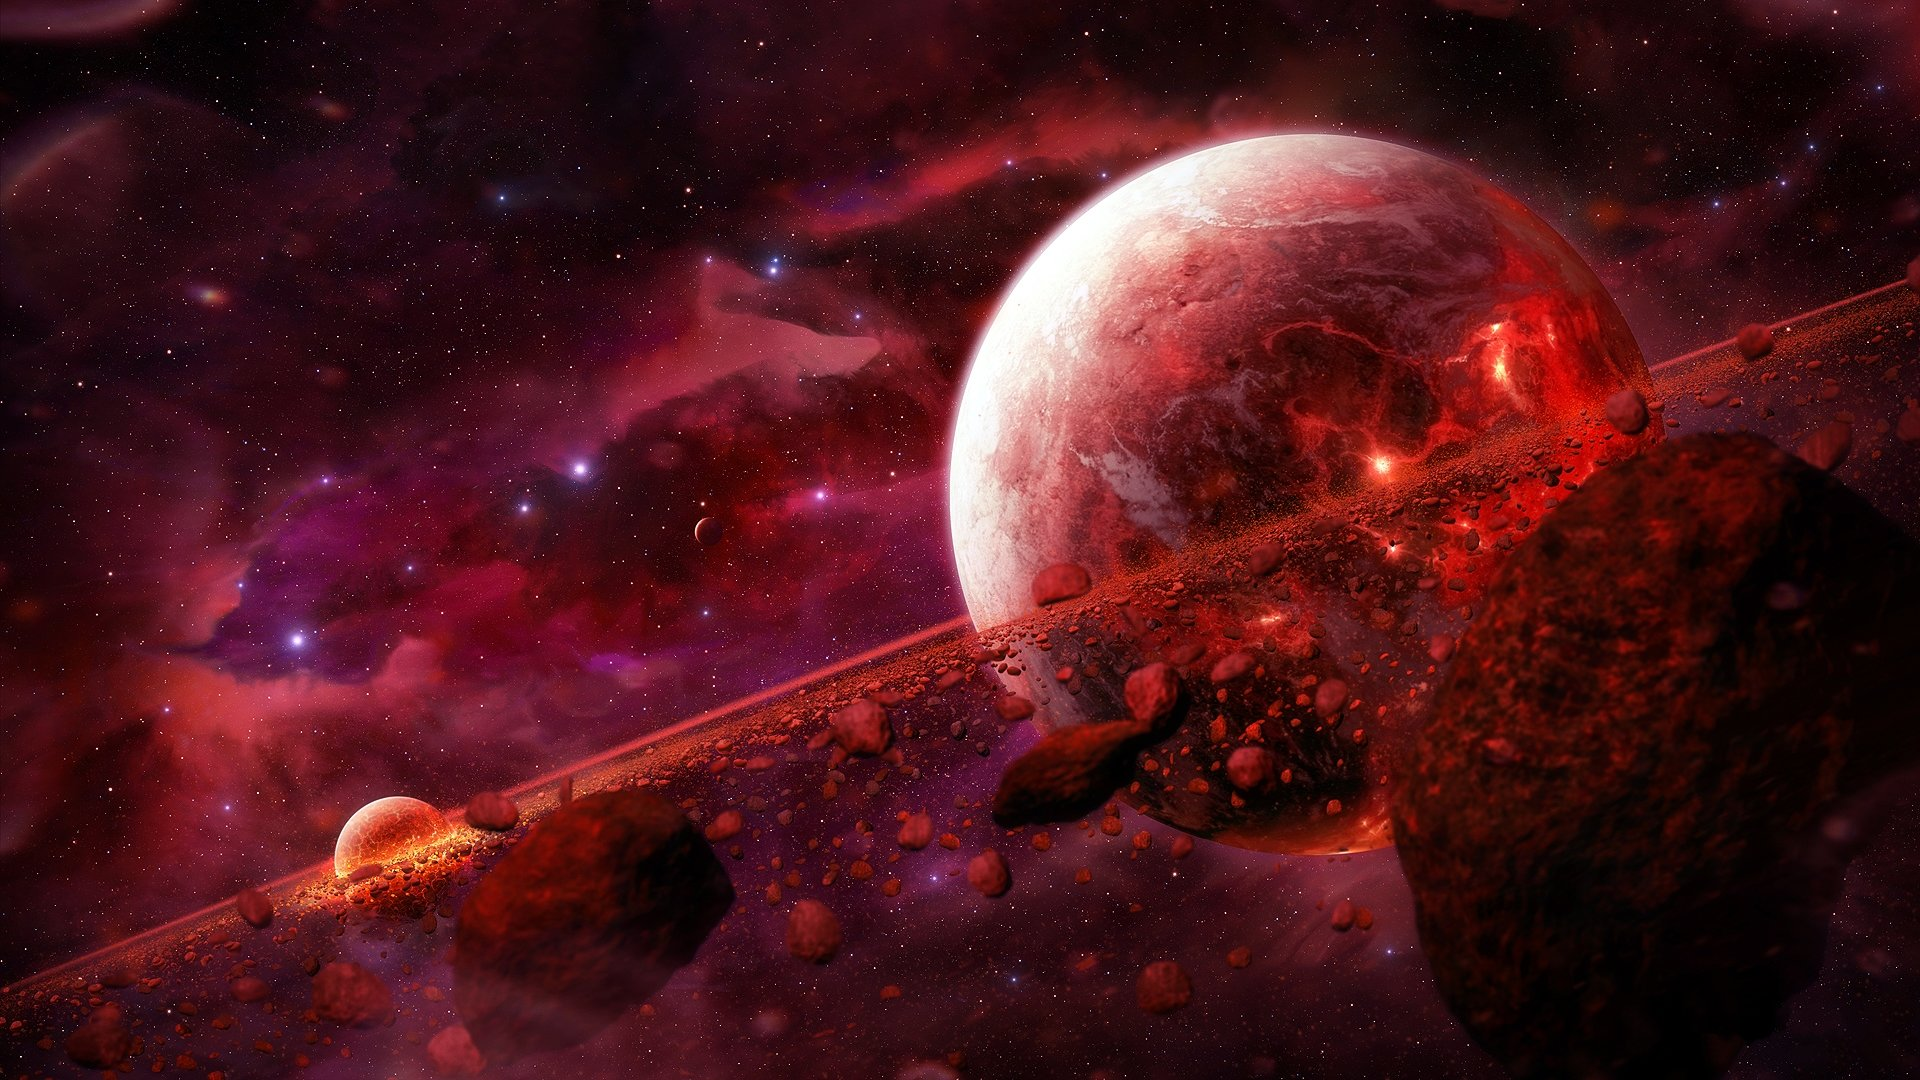 Free Download Cool Space Wallpaper ID398629 Hd 1920x1080 For Desktop